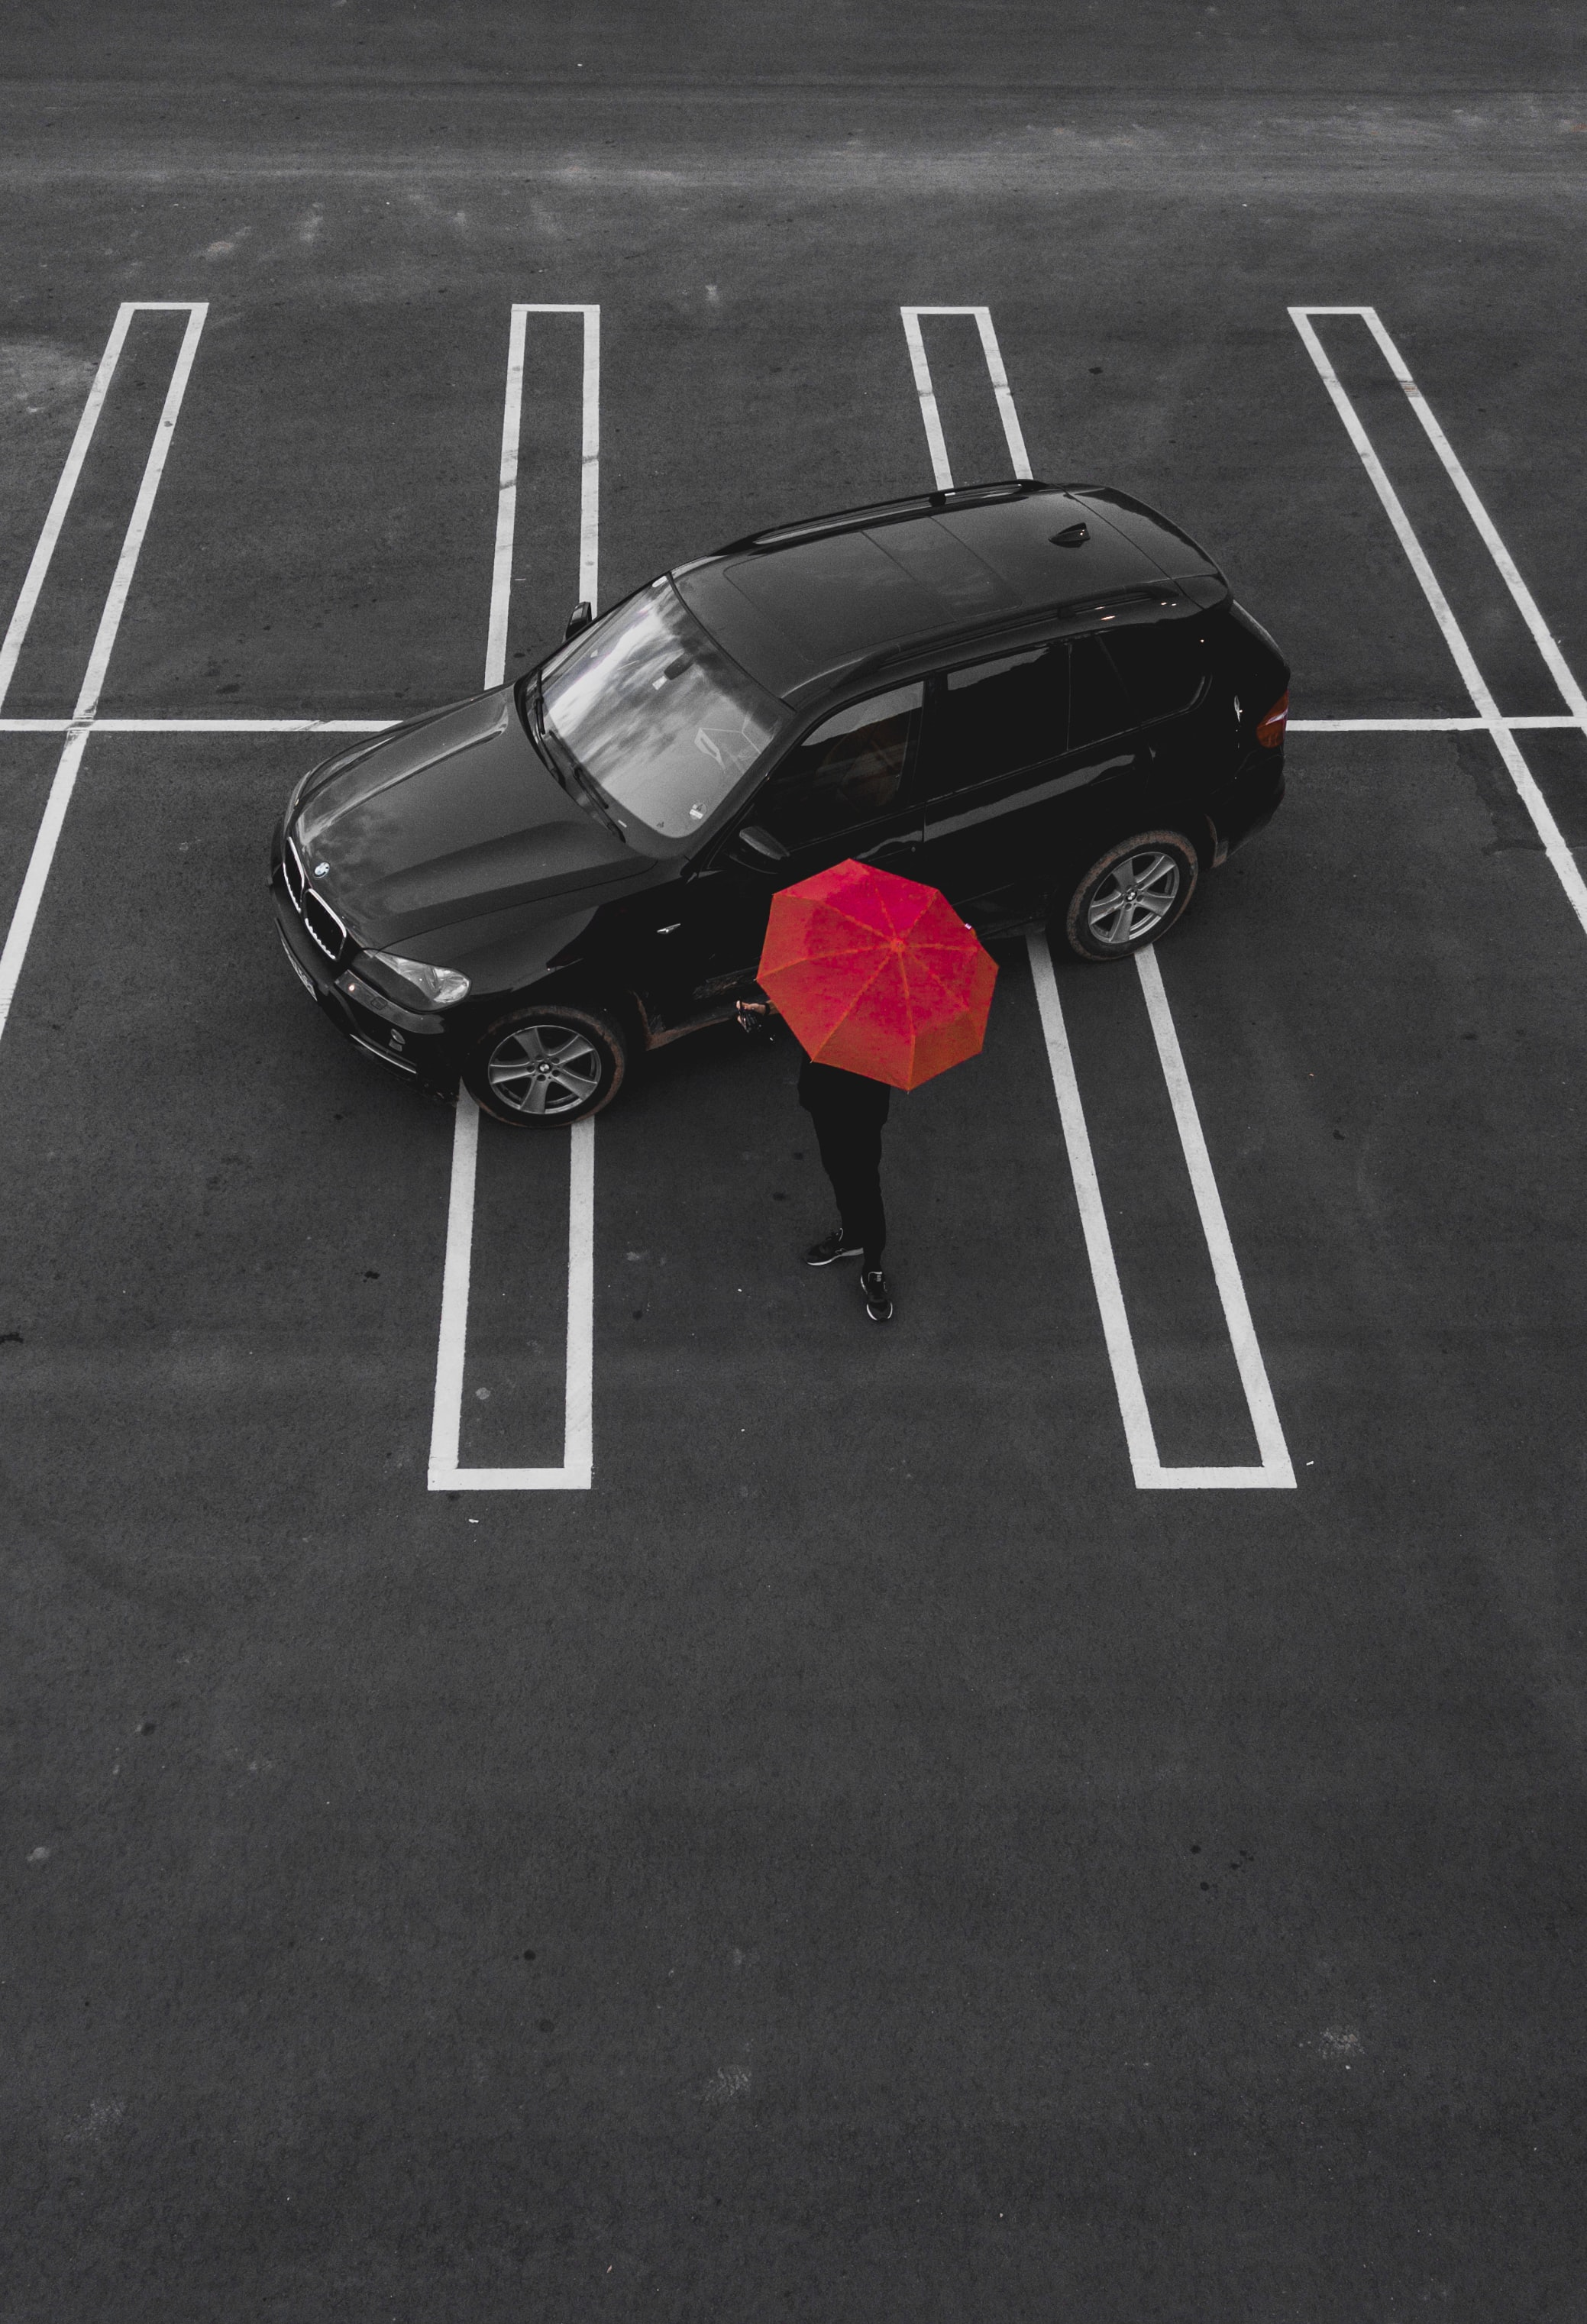 person holding red umbrella standing near black SUV